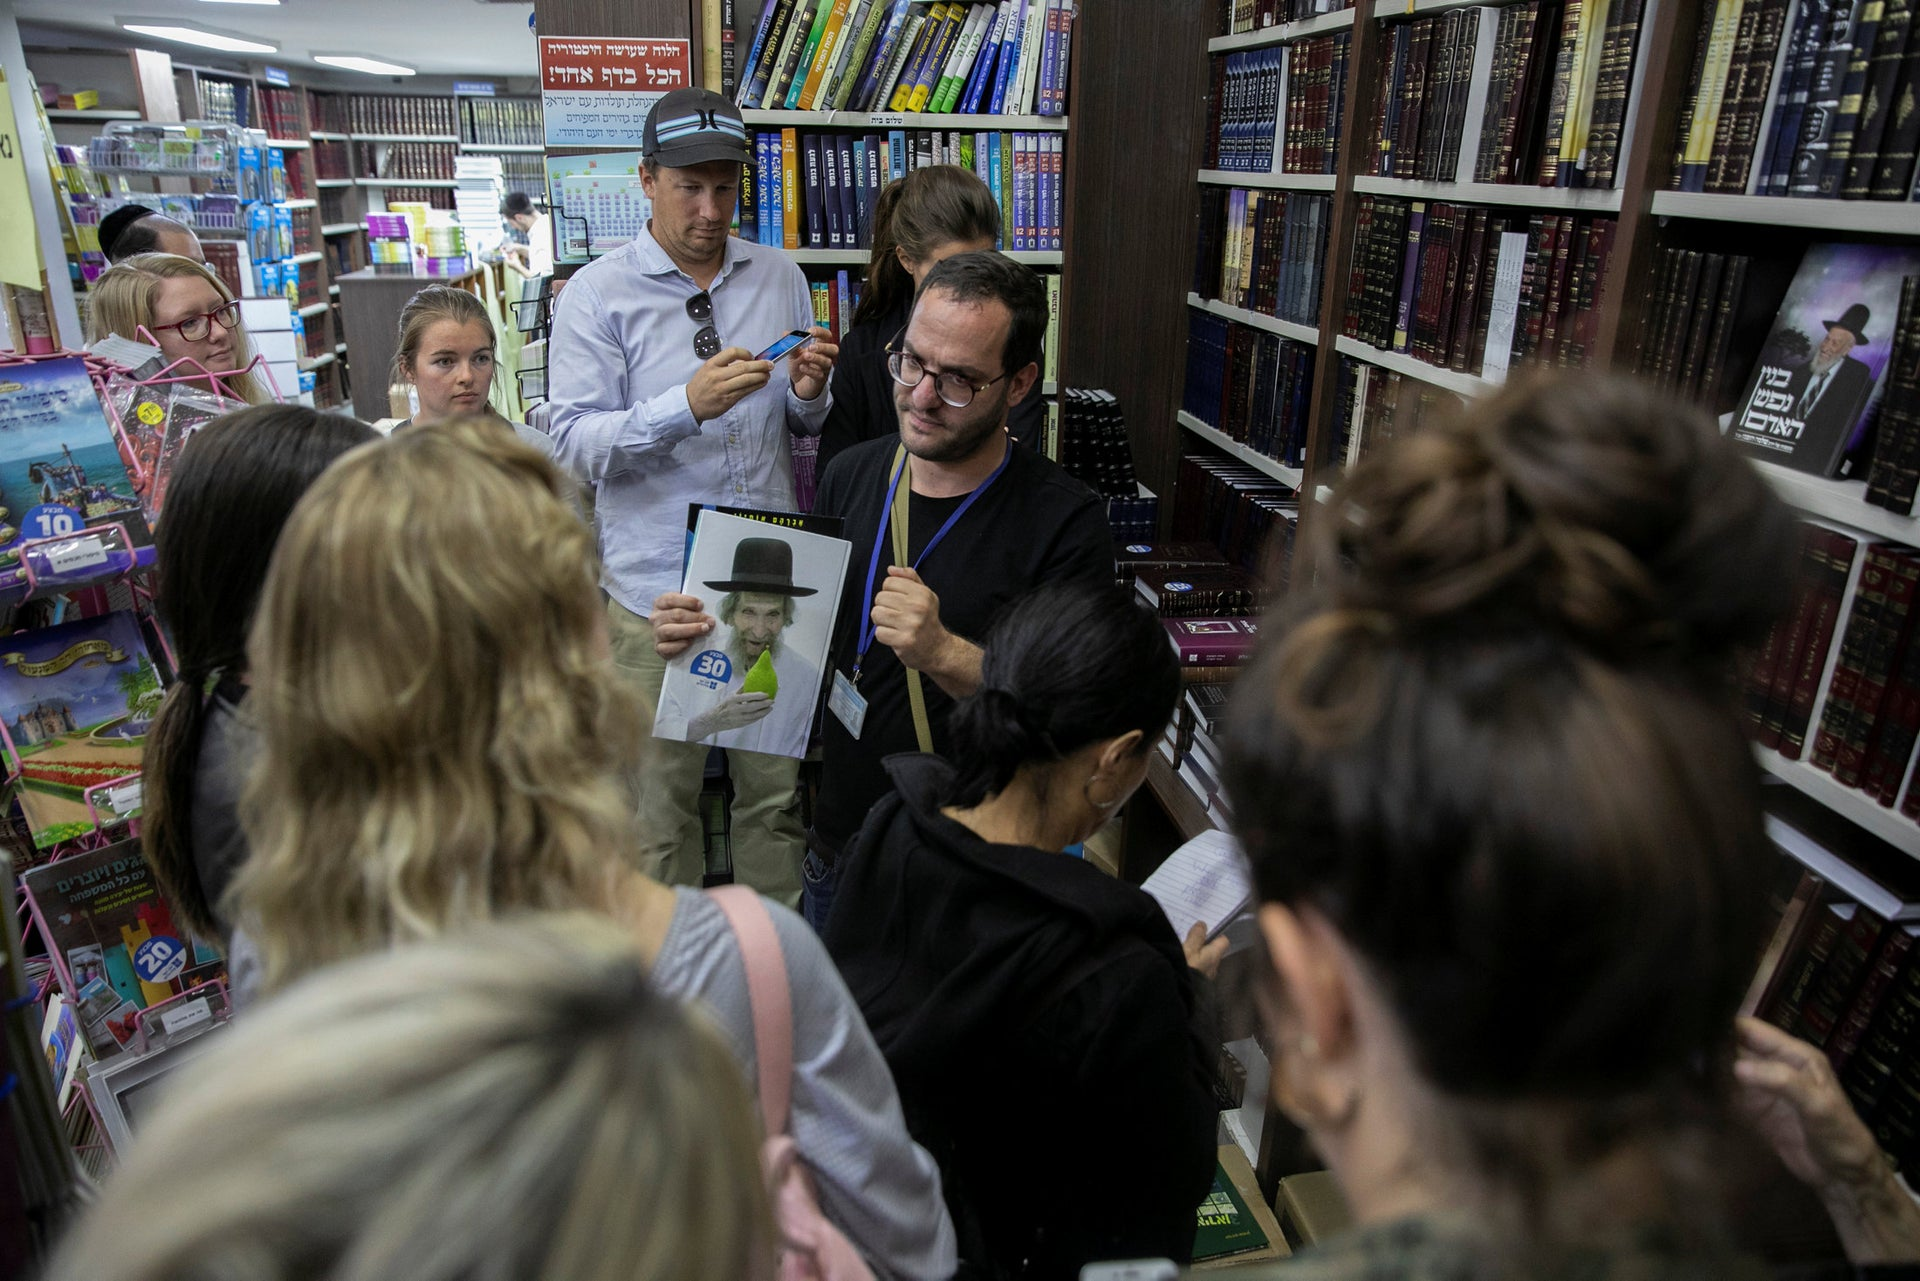 Moty Barlev talking to members of his tour in a Jerusalem bookstore. Although most of the books are religious, there are also some novels and comic books written by ultra-Orthodox authors.